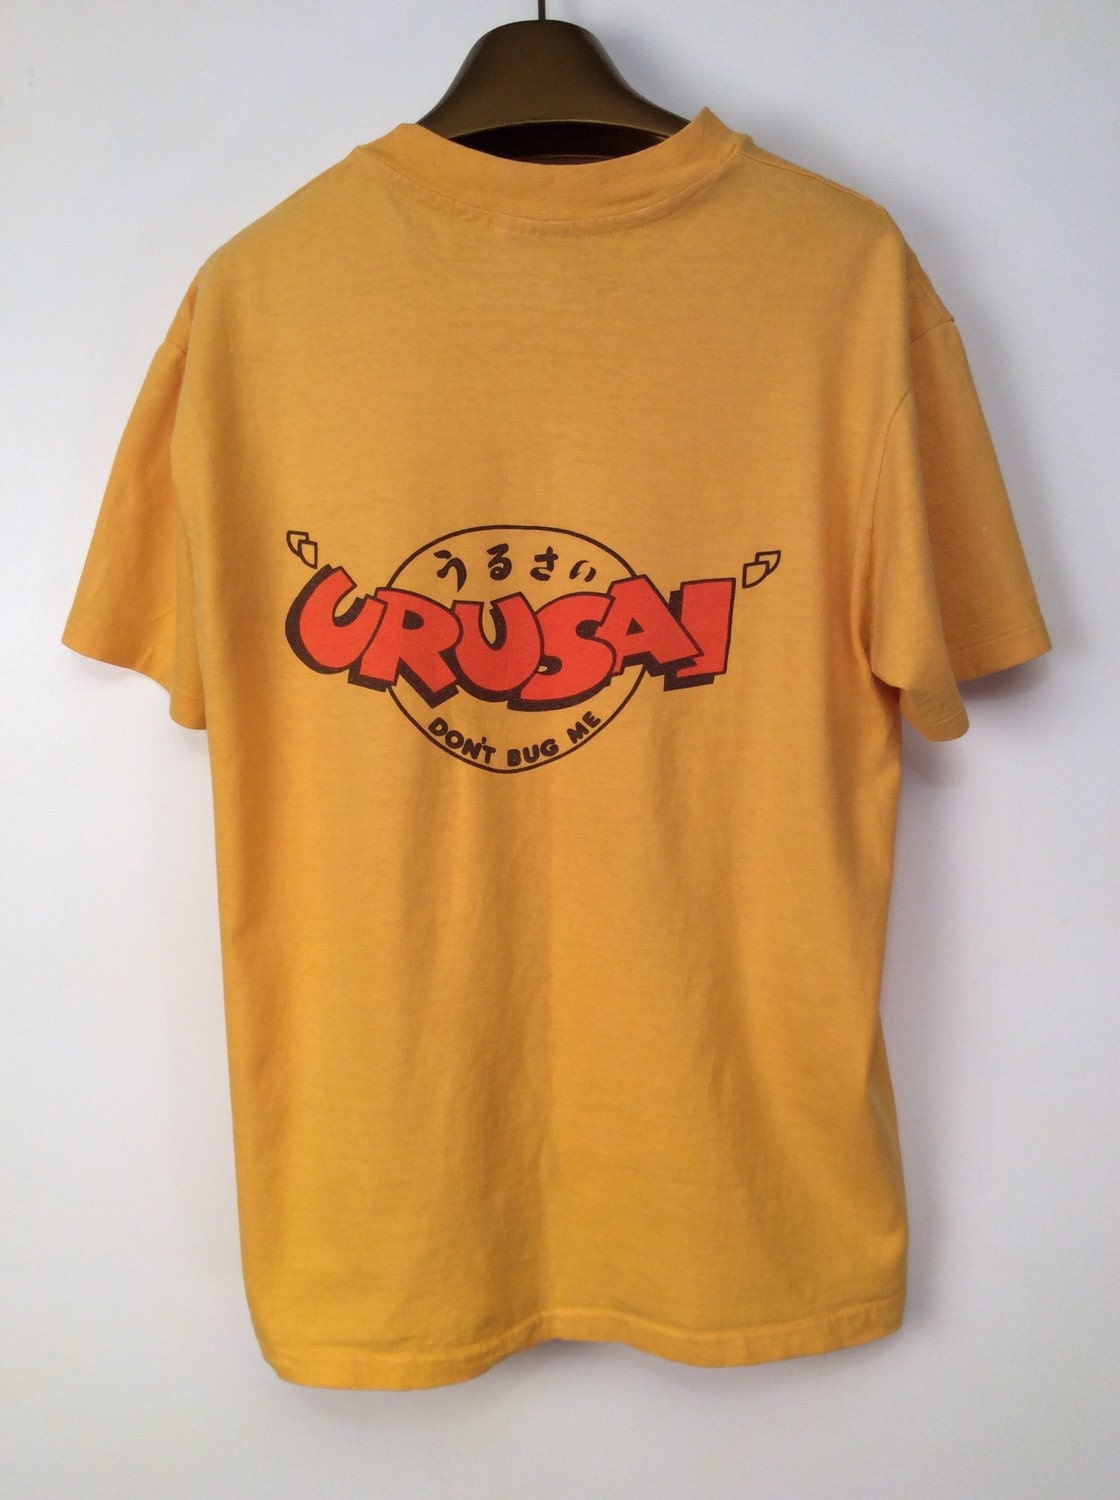 Vintage graphic t shirt crusai logo on back yellow t shirt sz for Shirts with graphics on the back